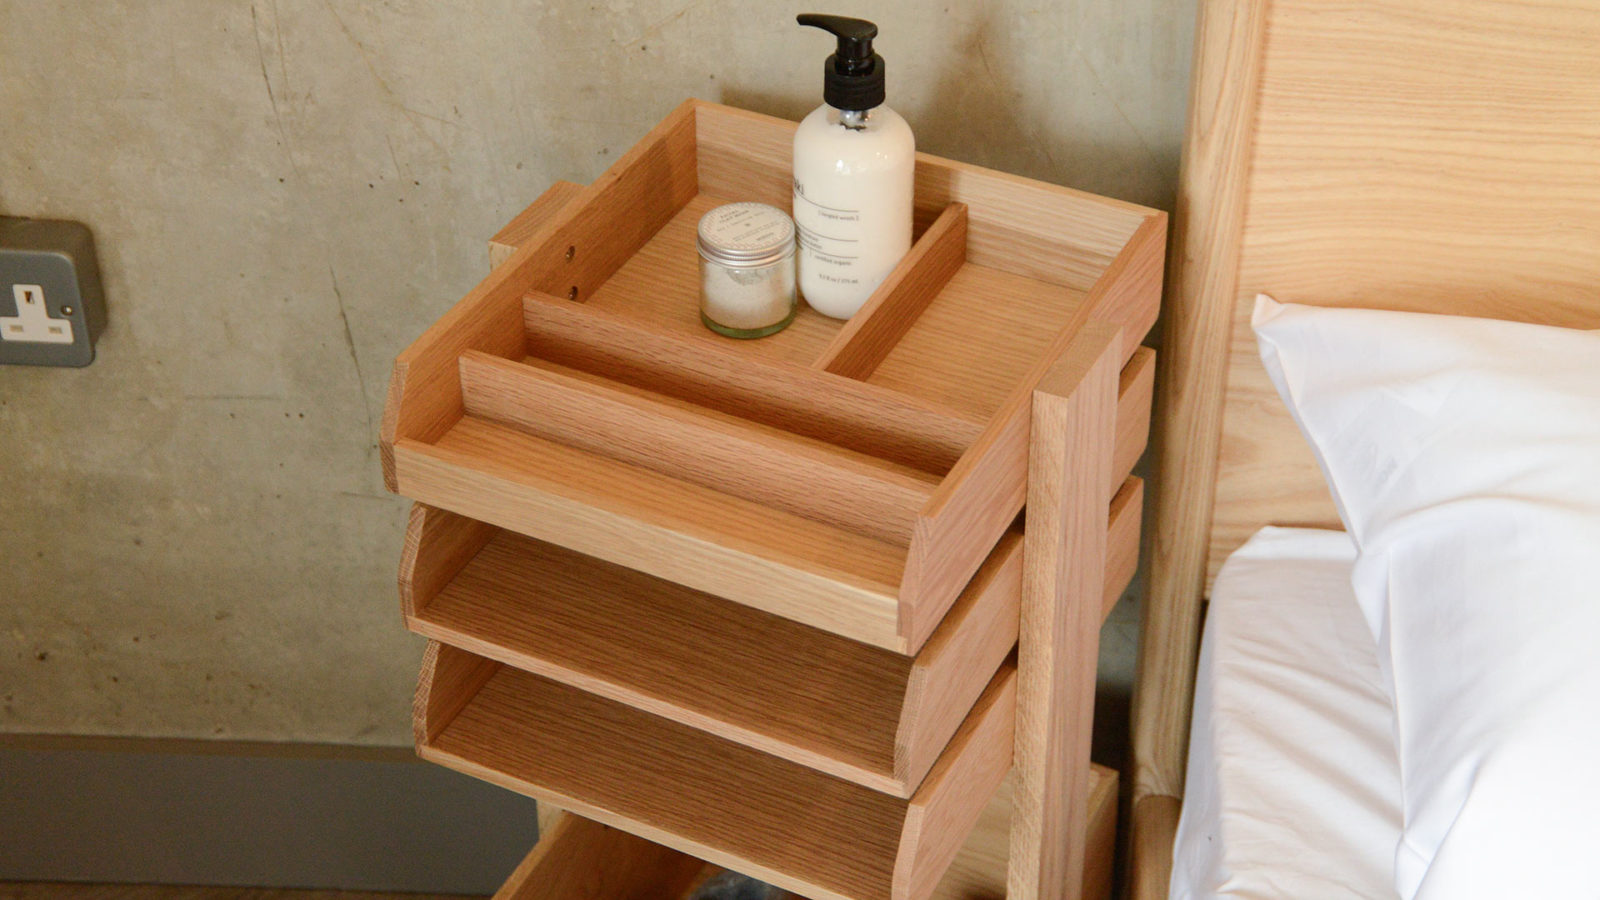 keeping tidy - organiser trolley in oak